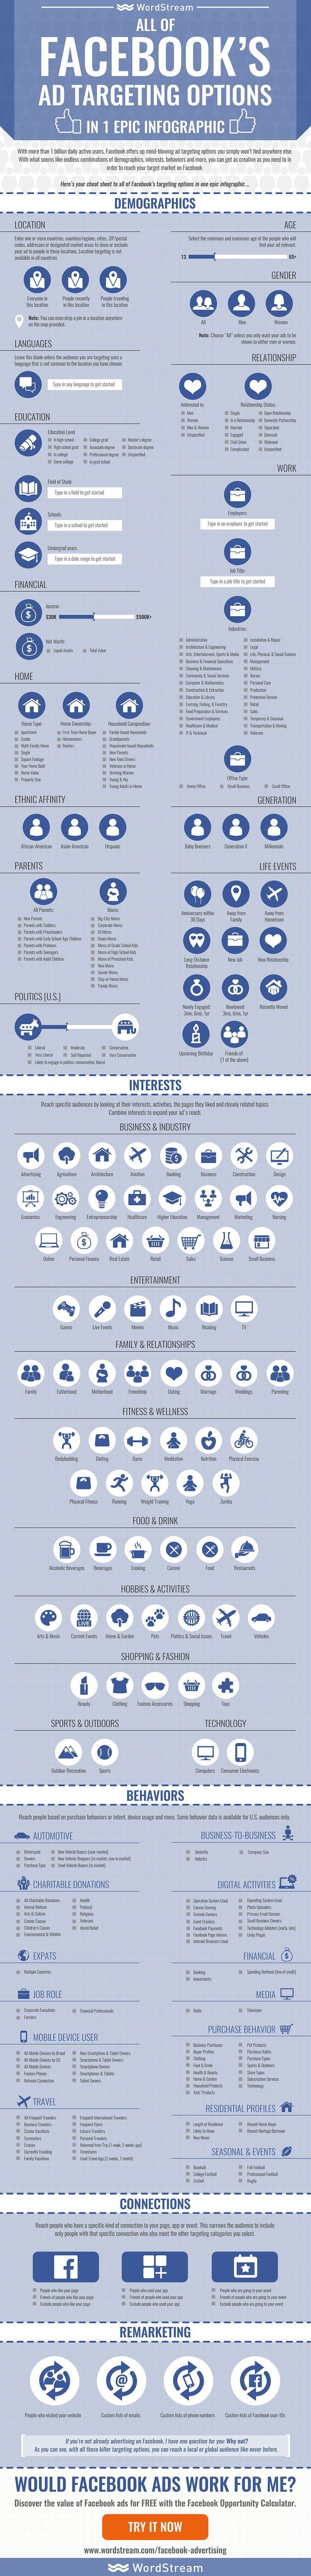 All of Facebook`s Ad Targeting Options in 1 Epic Infographic - https://www.facebook.com/TemplateMonster/?fref=ts